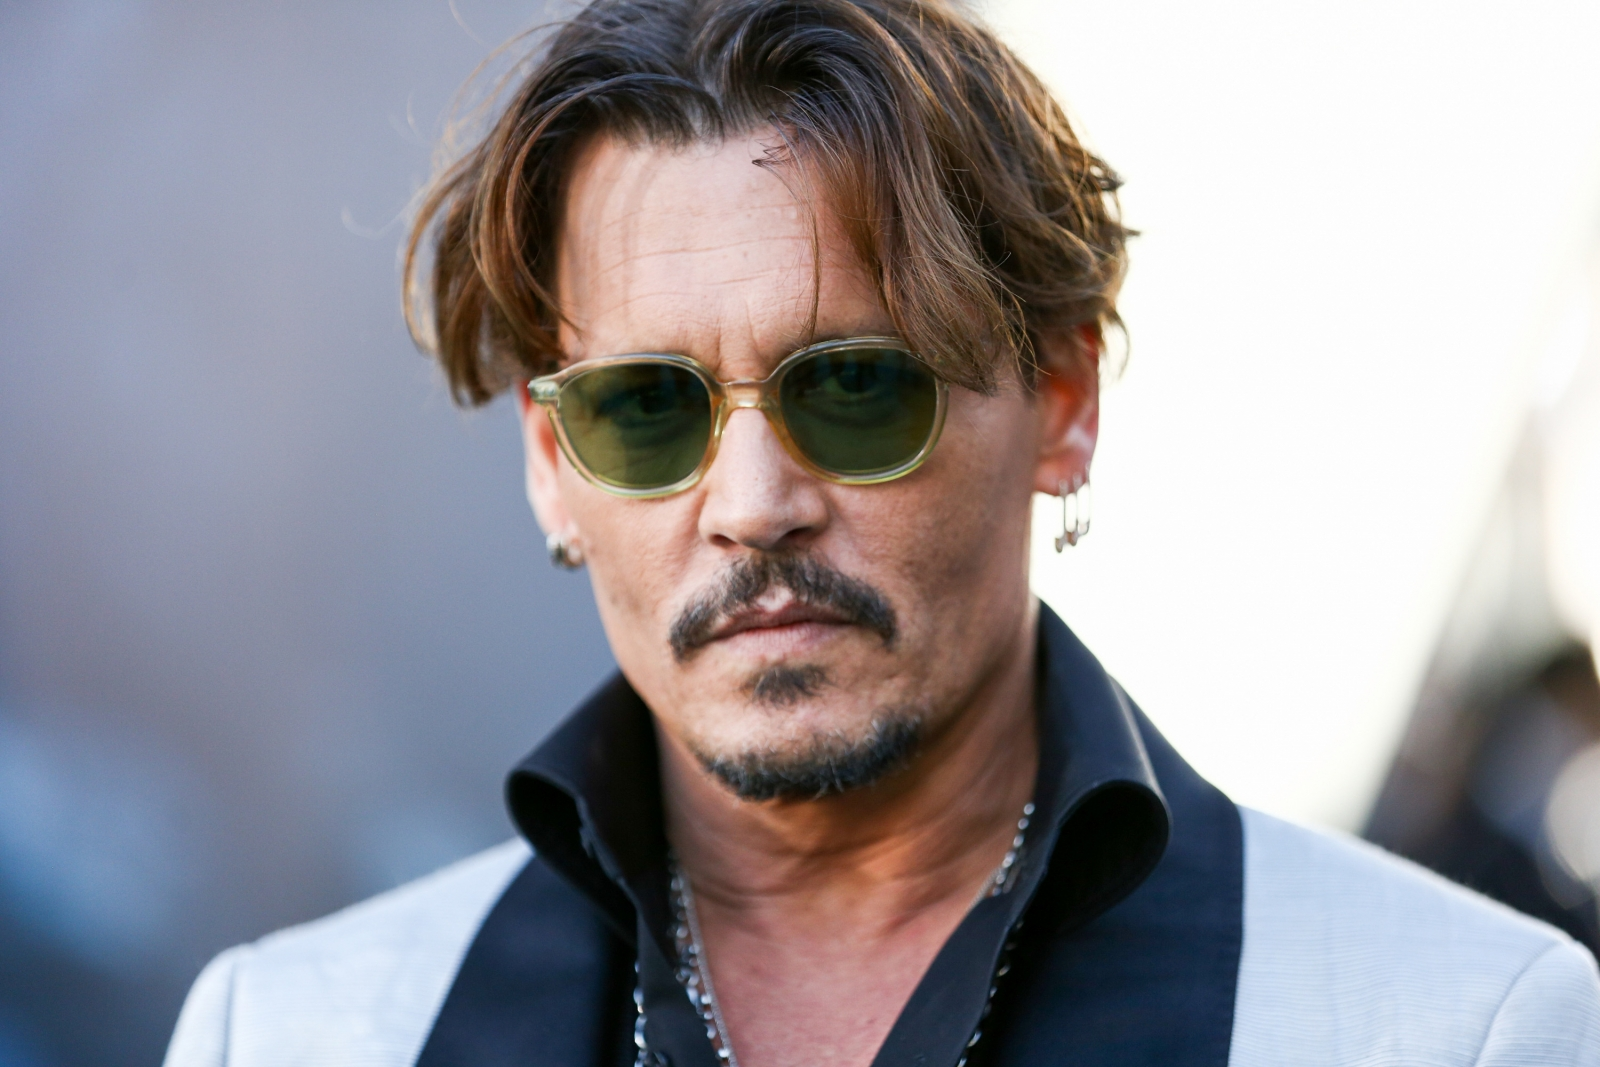 Johnny Depp $75m movie salary revealed in frantic emails ... Johnny Depp